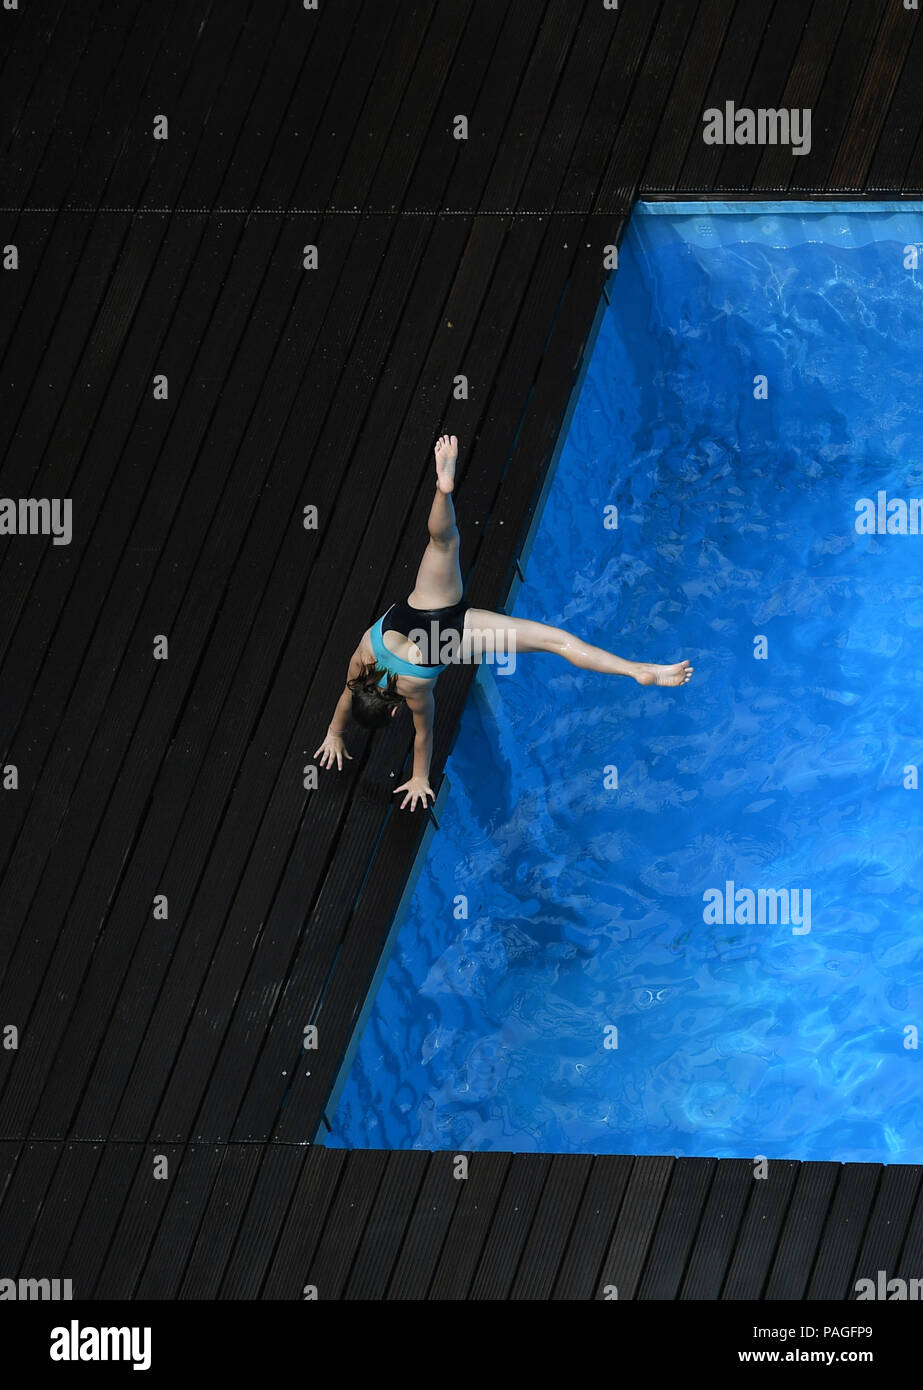 Essen, Germany. 22nd July, 2018. A girl jumps into the works swimming pool on the premises of the coking plant of the Zollverein Coal Mine Industrial Complex (Zeche Zollverein). The Frankfurt artists Dirk Paschke and Daniel Milohnic created the work swimming pool in 2001 in the course of the art project 'Zeitgenoessische Kunst und Kritik' (lit. contemporary art and criticism). Credit: Ina Fassbender/dpa - ATTENTION: editorial use only in connection with the latest coverage and only if the credit mentioned above is referenced in full/dpa/Alamy Live News - Stock Image